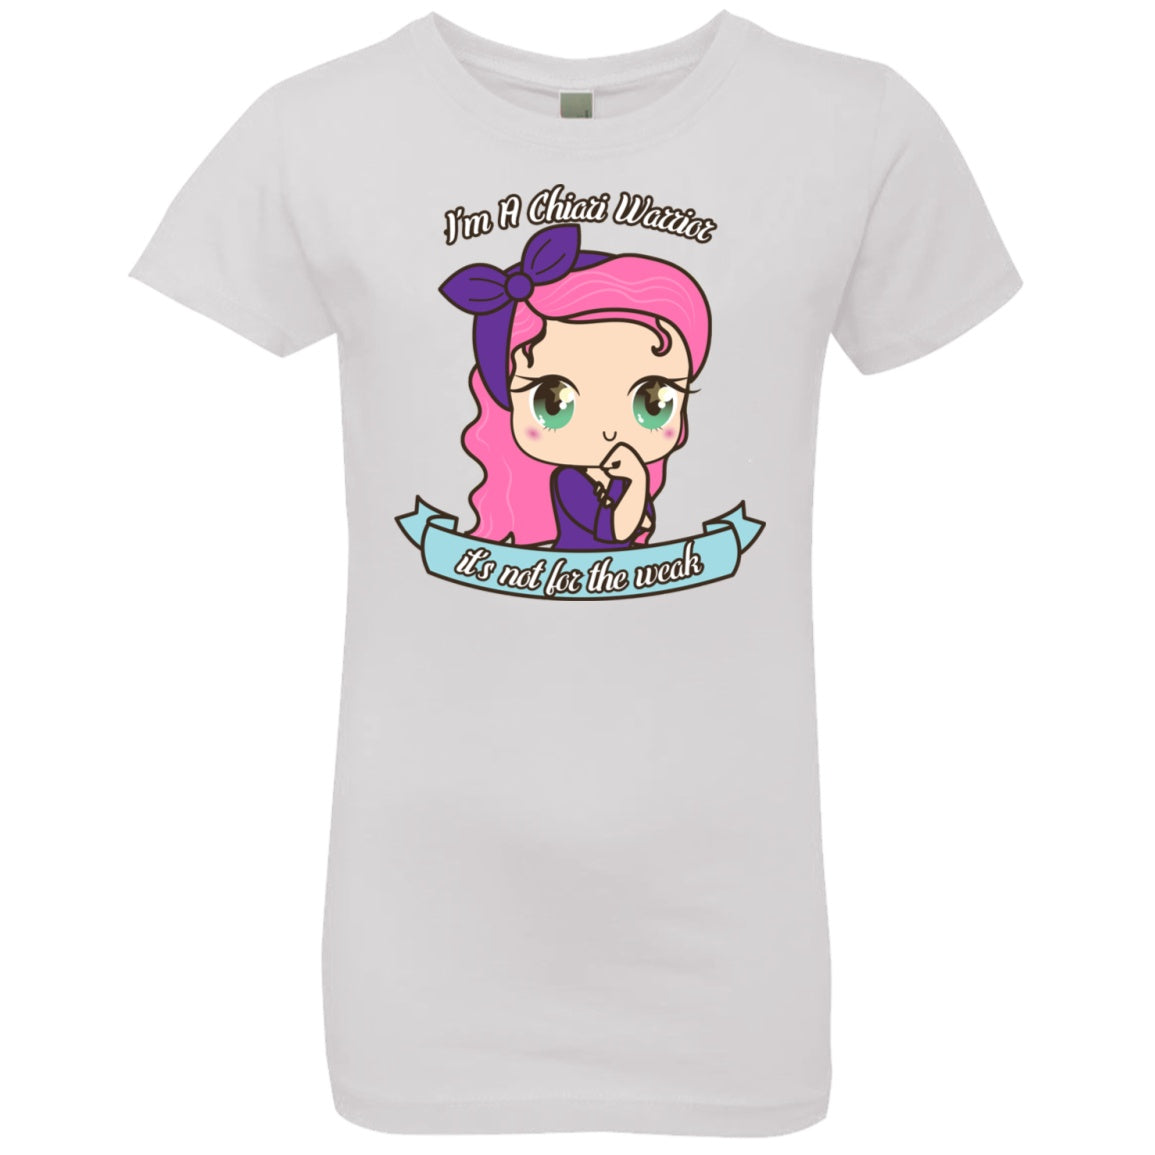 Cute Chiari Warrior Girls' Princess T-Shirt - The Unchargeables